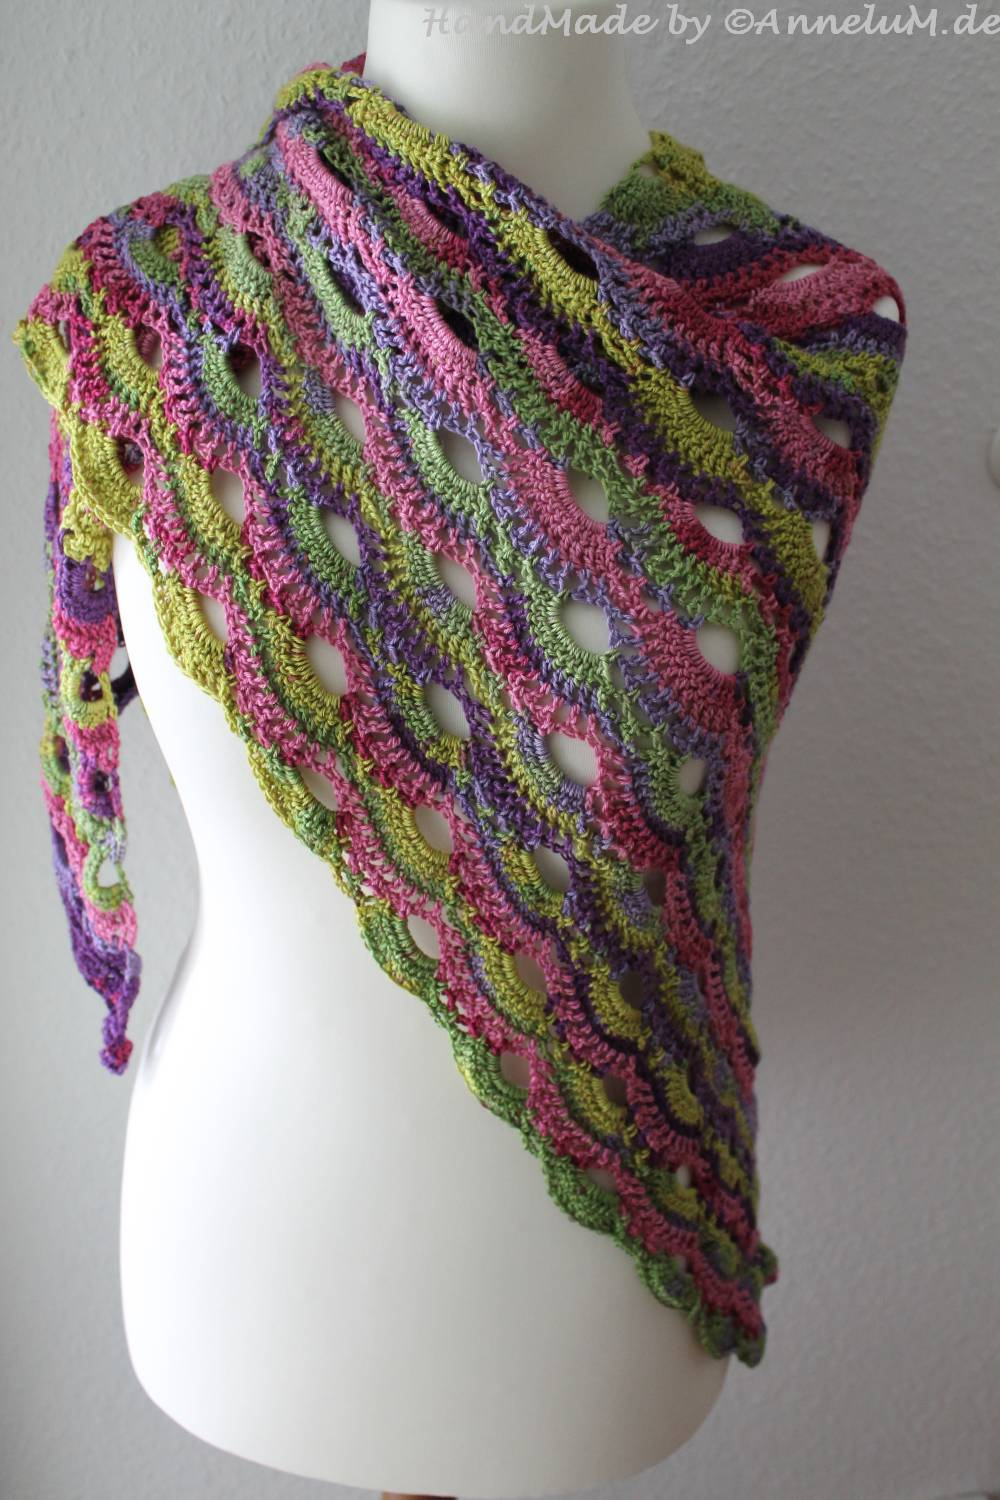 Crochet Pattern Virus Shawl : Virustuch on Pinterest Woolpedia, Crochet Geek and Cloths